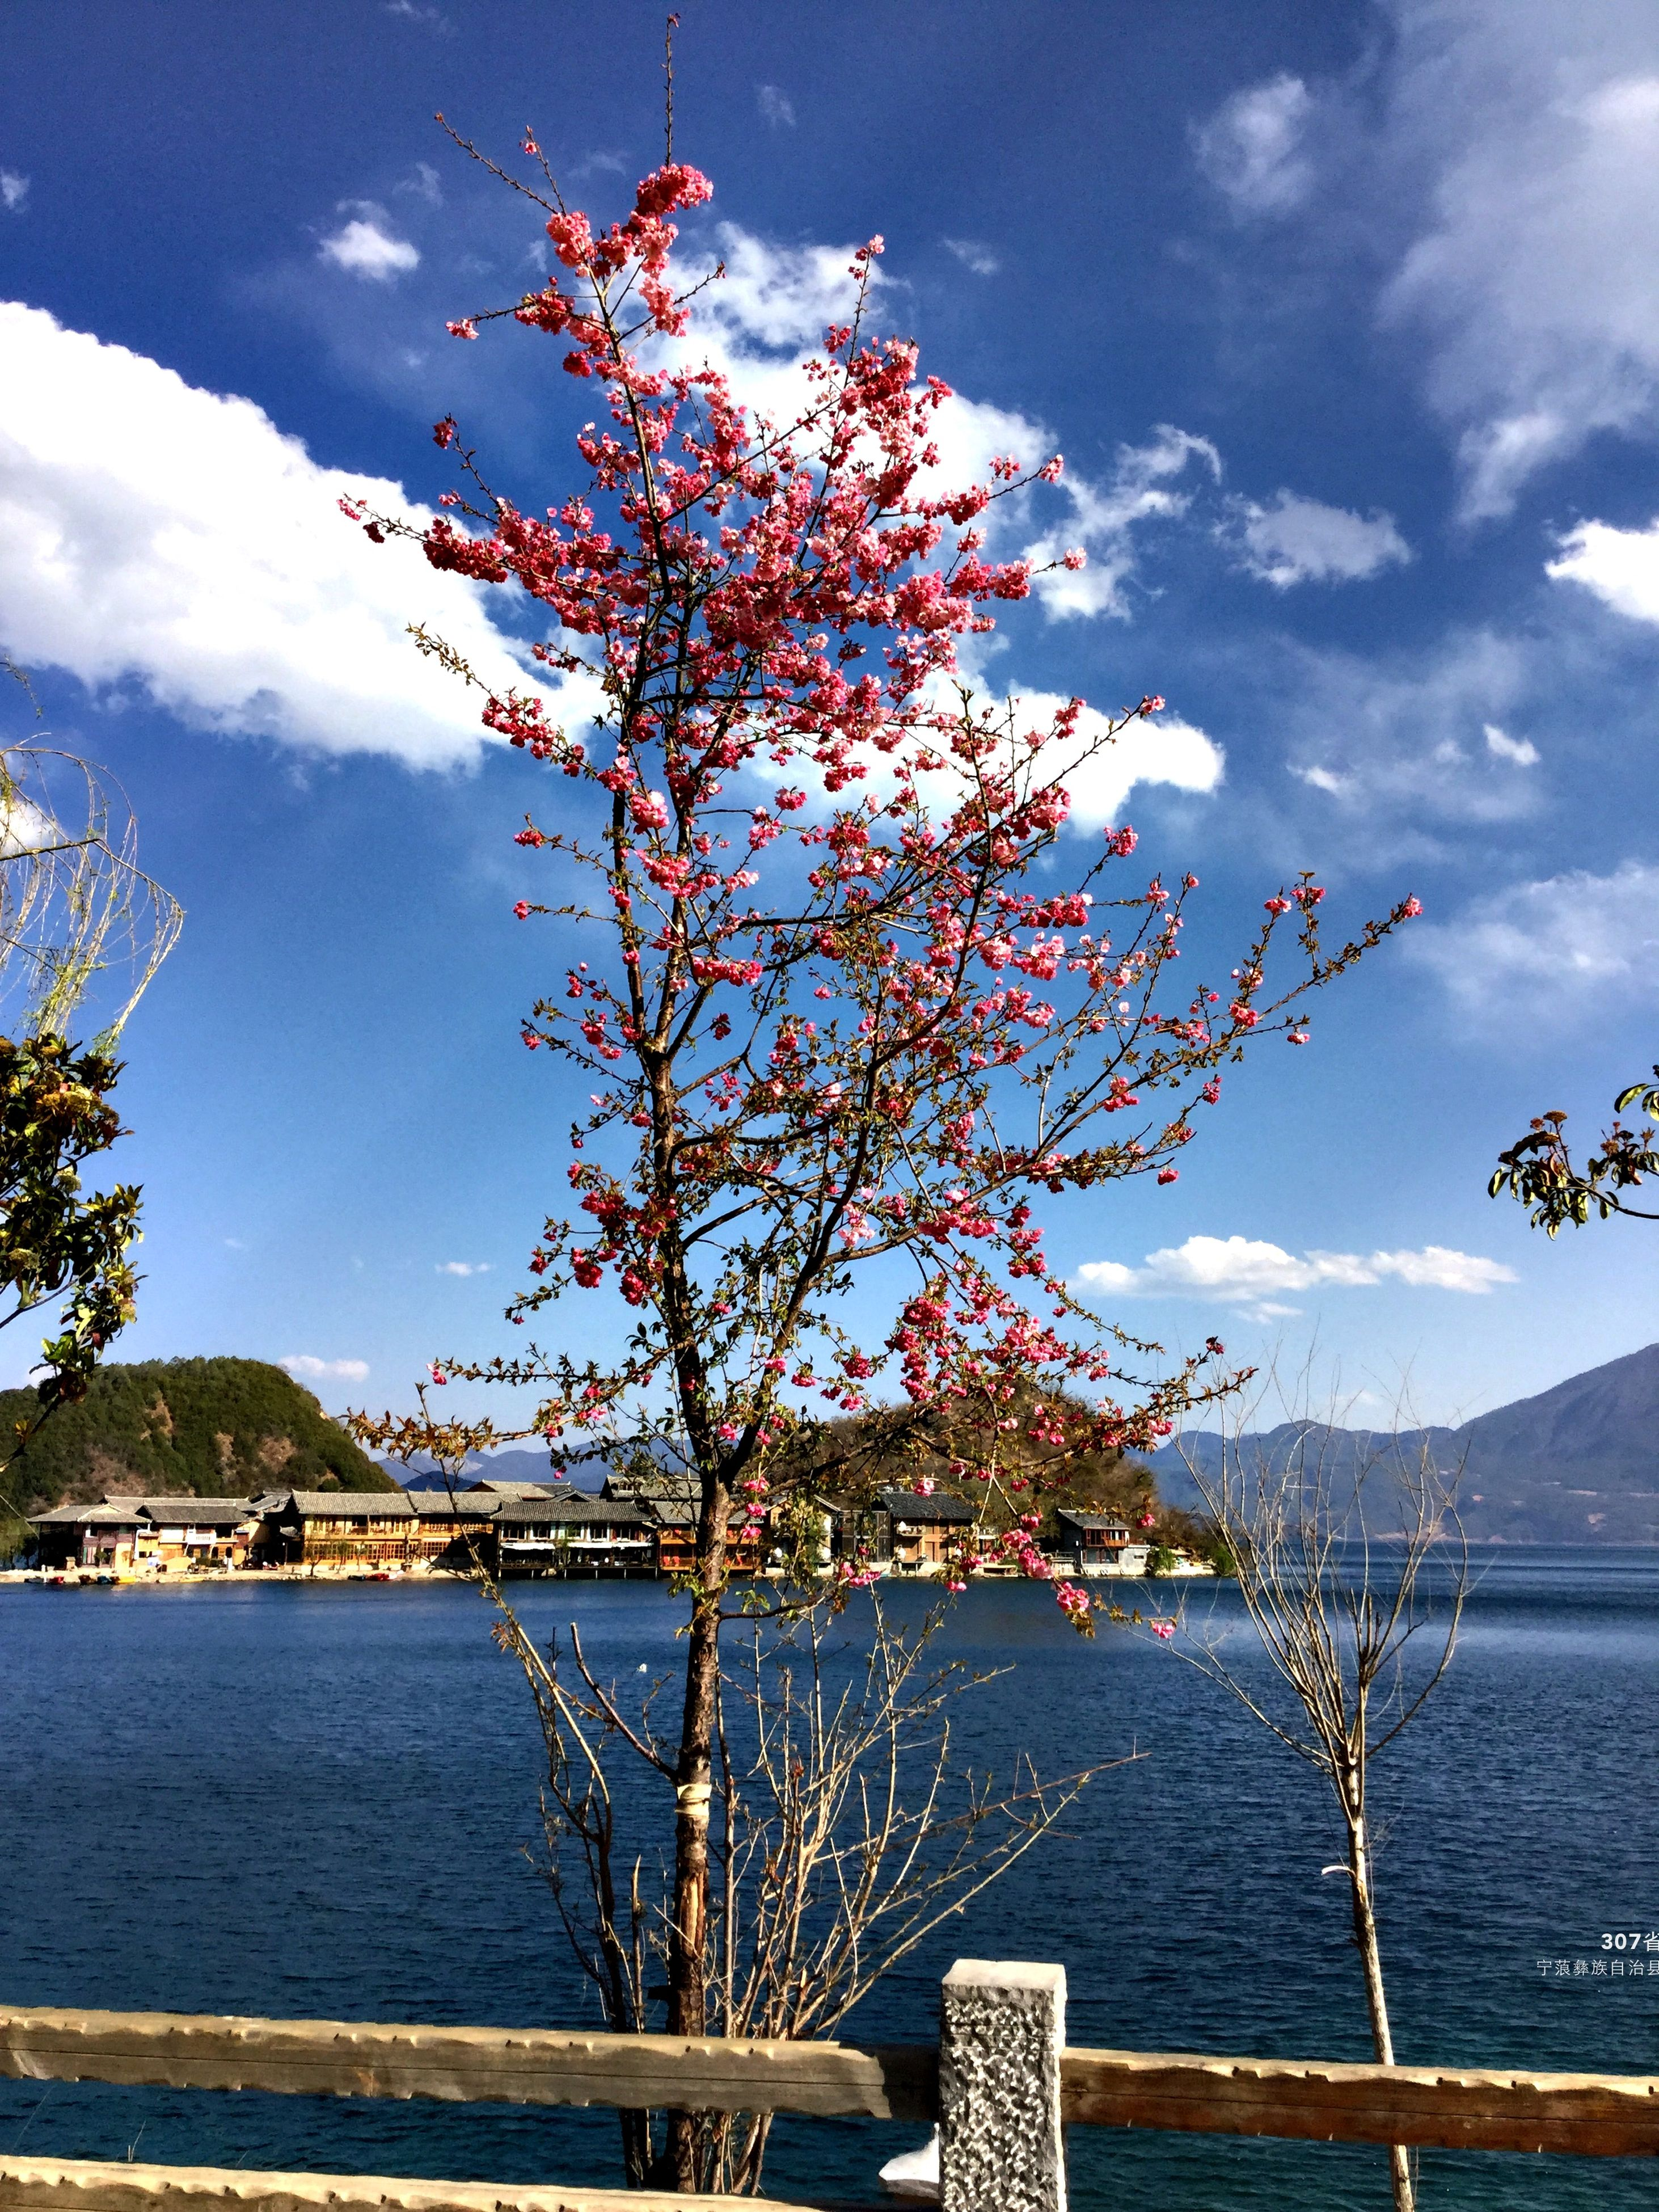 tree, sky, low angle view, growth, cloud - sky, nature, built structure, beauty in nature, building exterior, architecture, branch, blue, flower, cloud, day, outdoors, no people, sunlight, tranquility, hanging